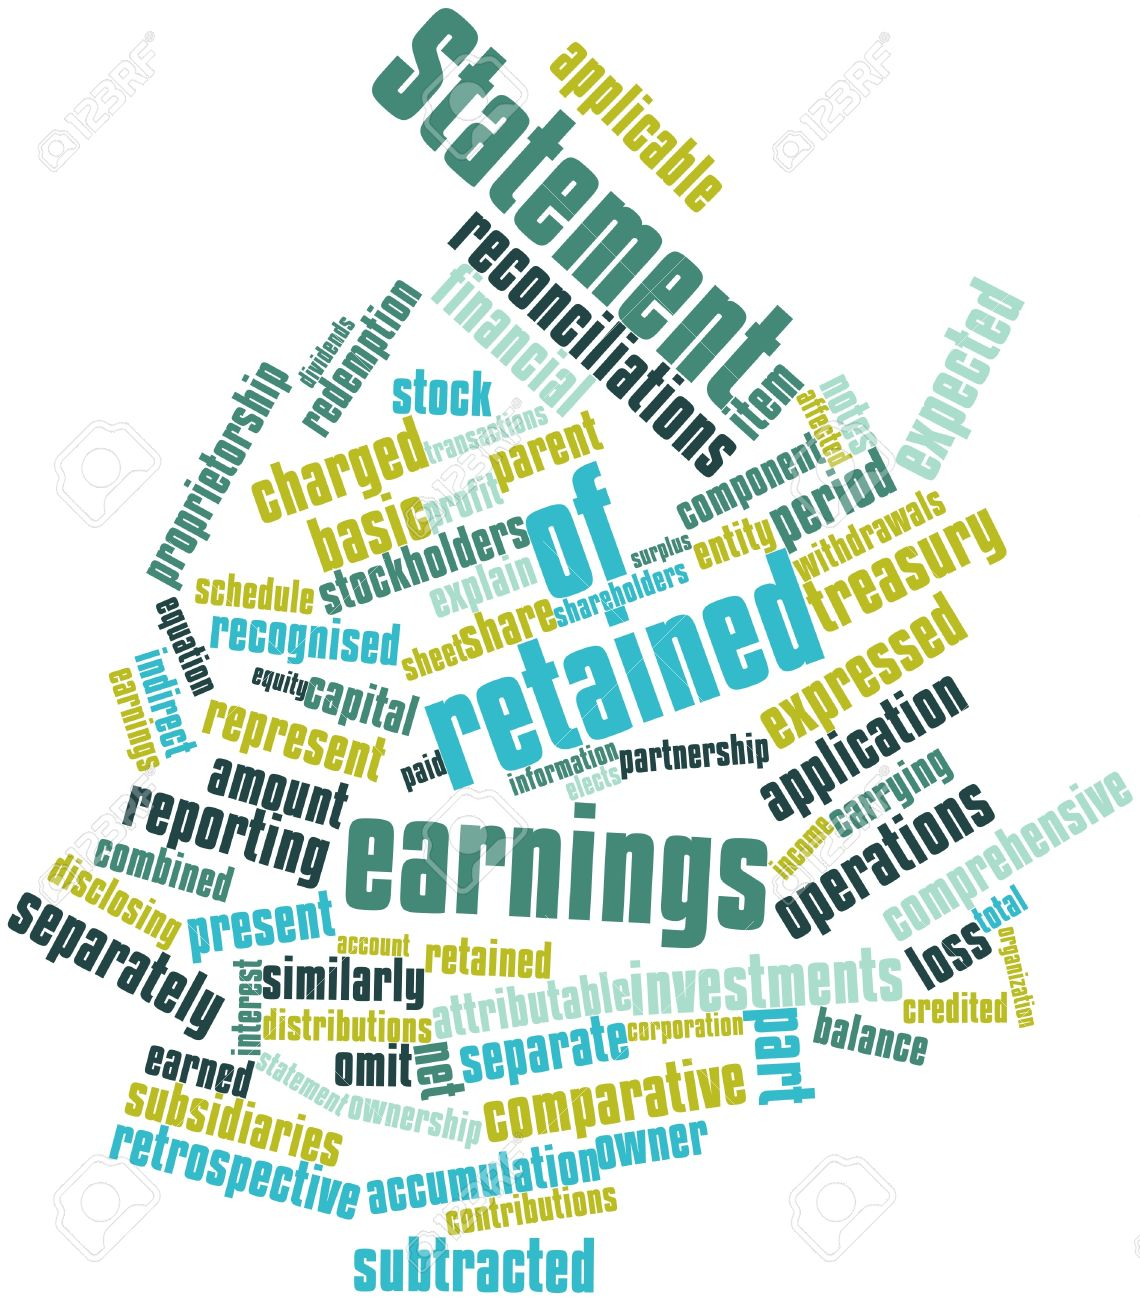 Abstract word cloud for Statement of retained earnings with related